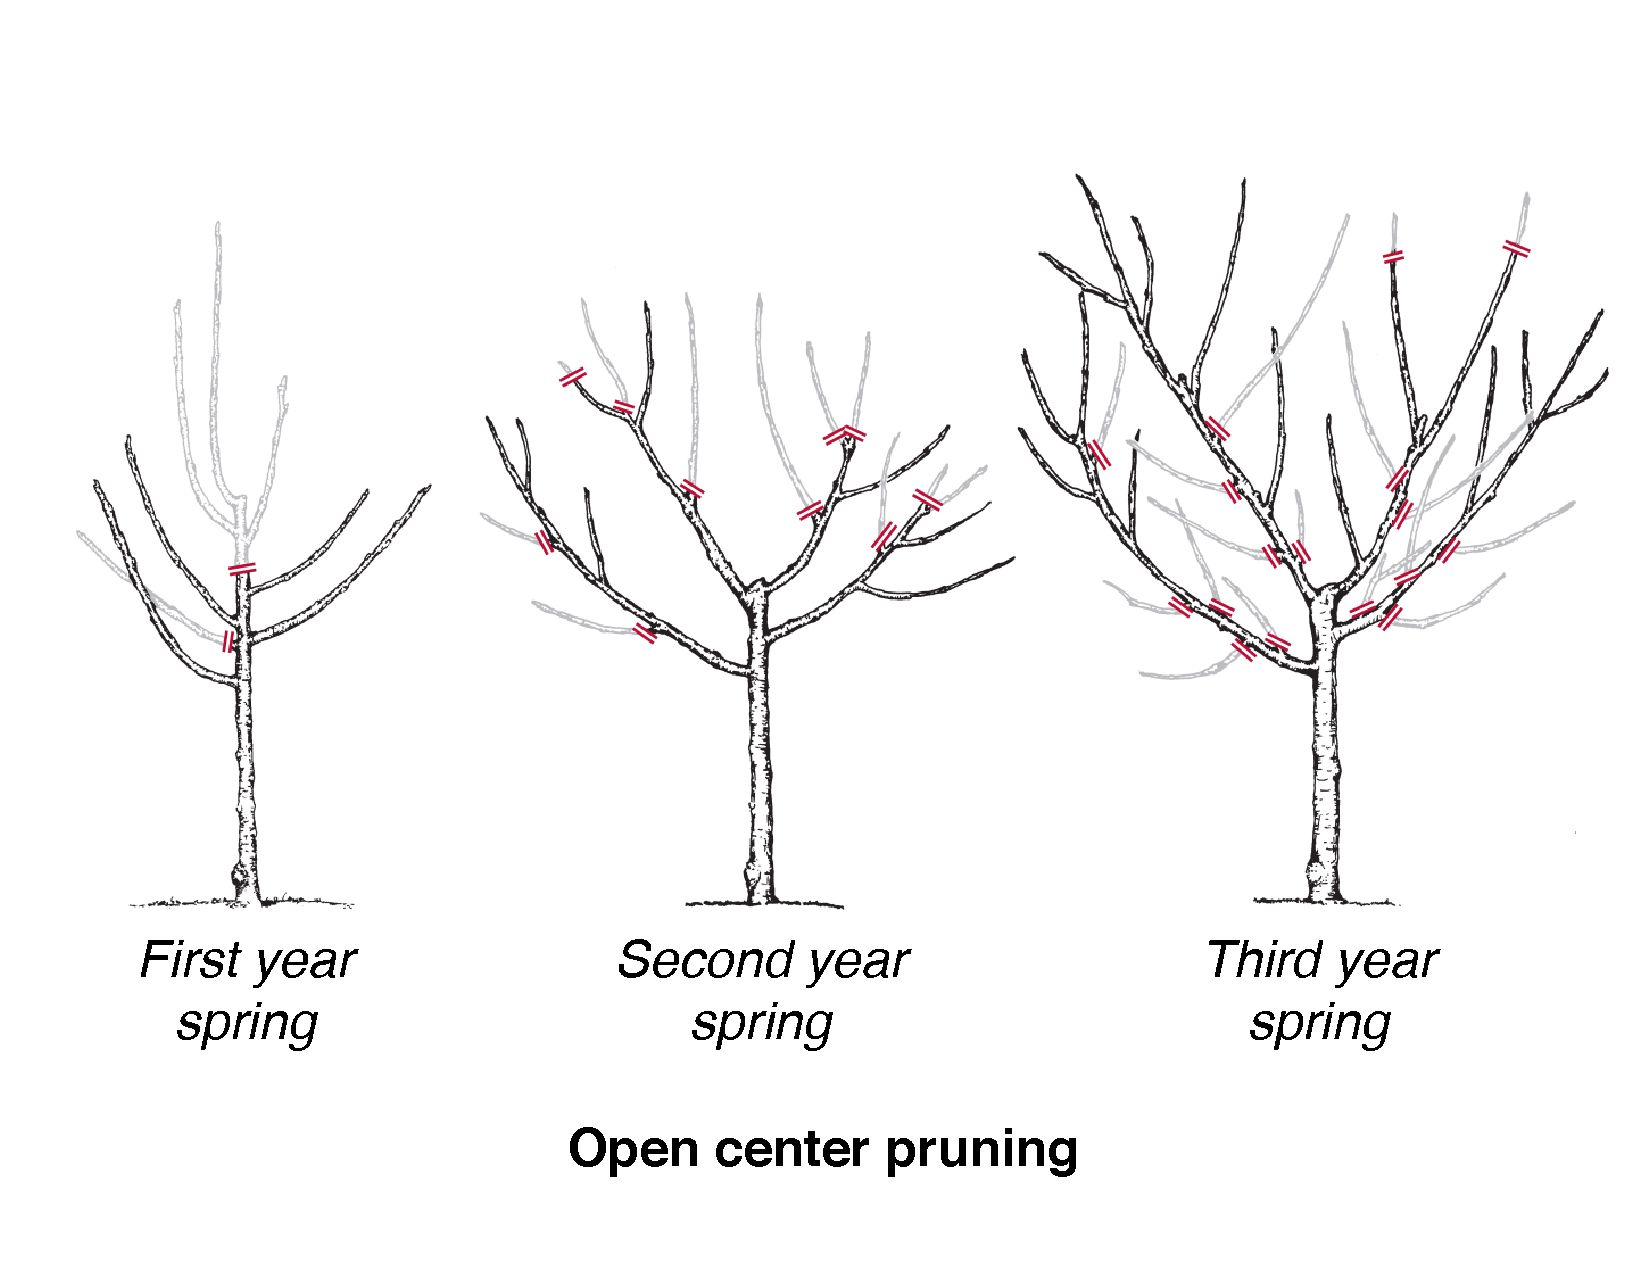 how to prune an apple tree diagram sbc wiring showing three trees in stages of open center